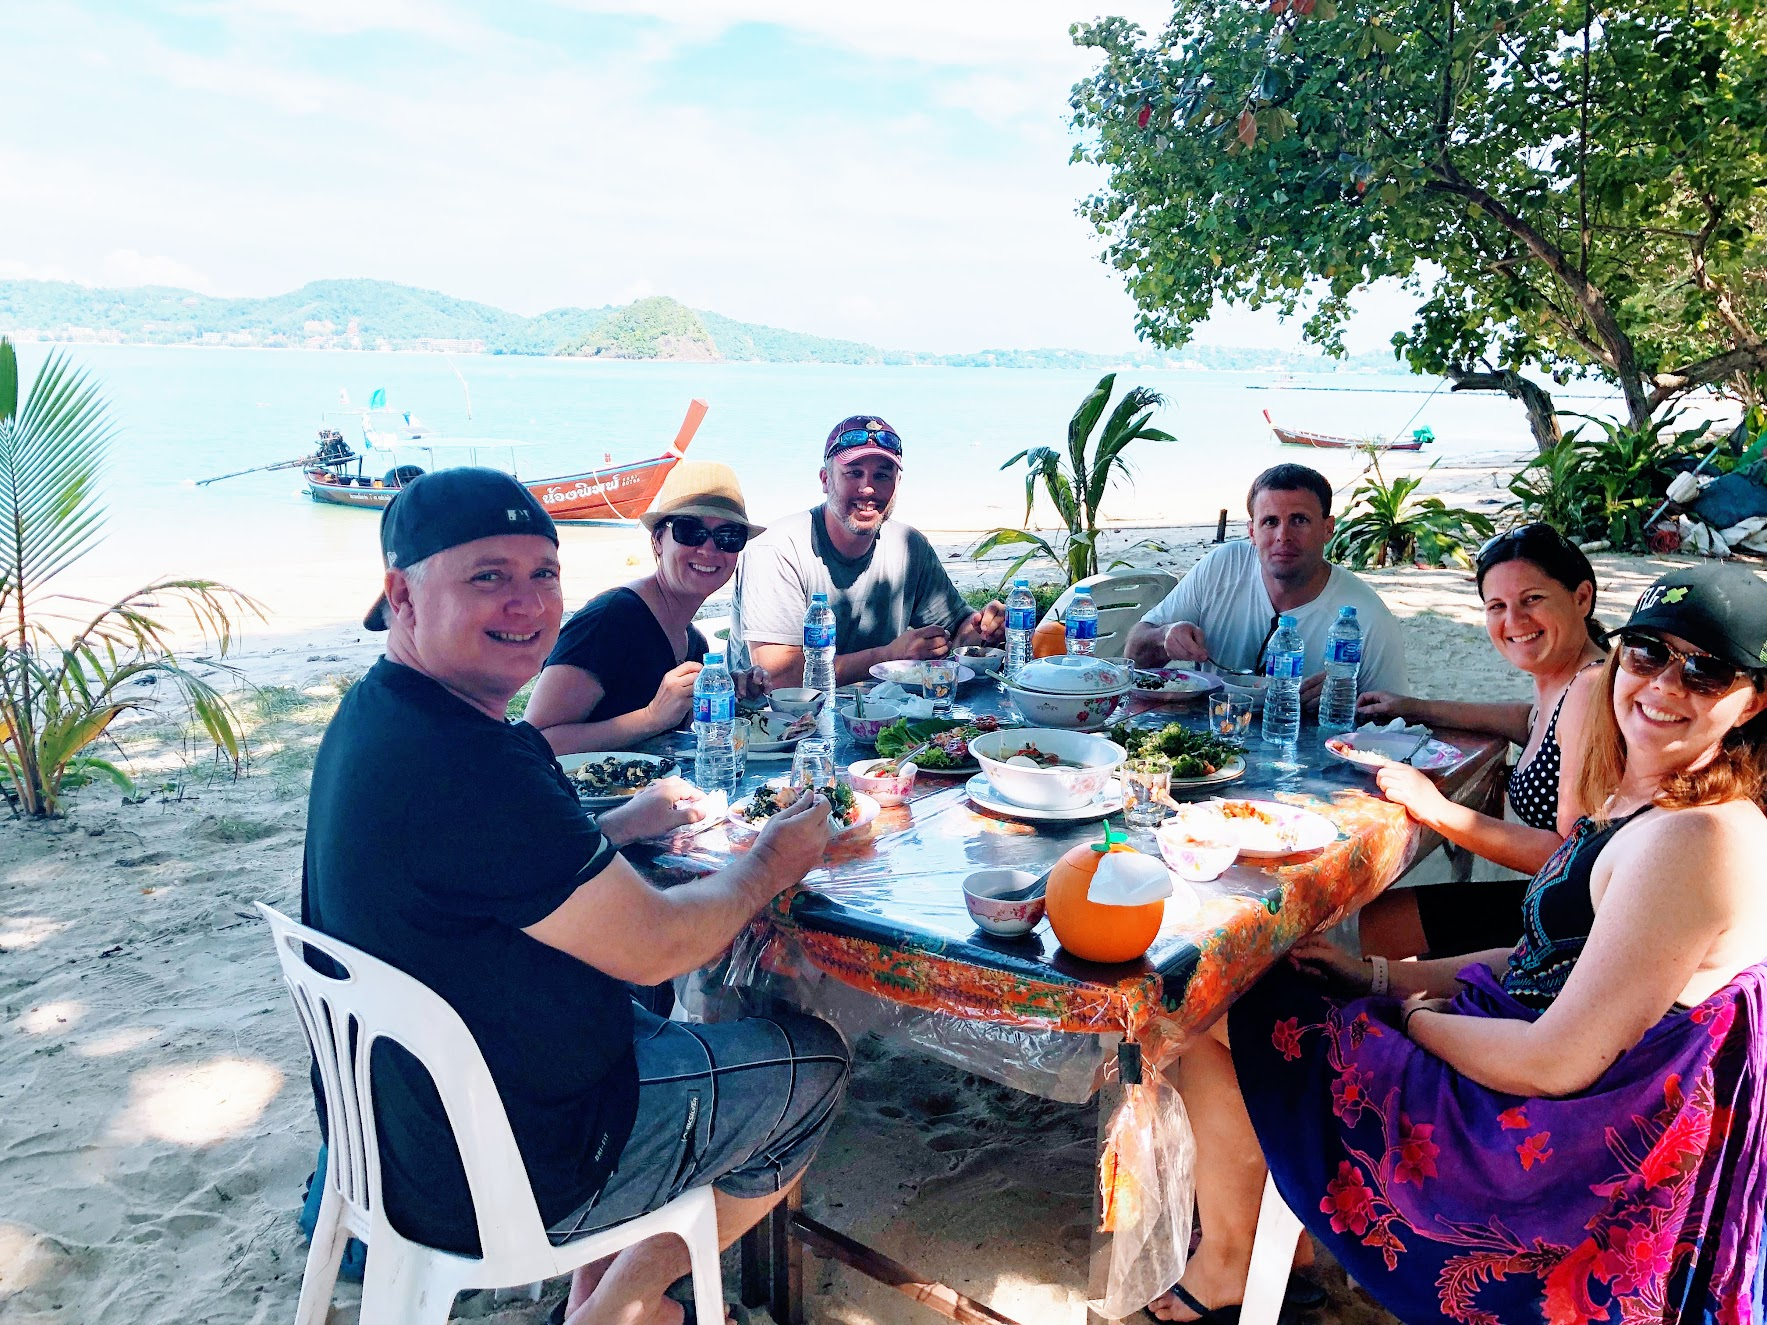 Enjoying lunch on a private island off of Phuket, Thailand.